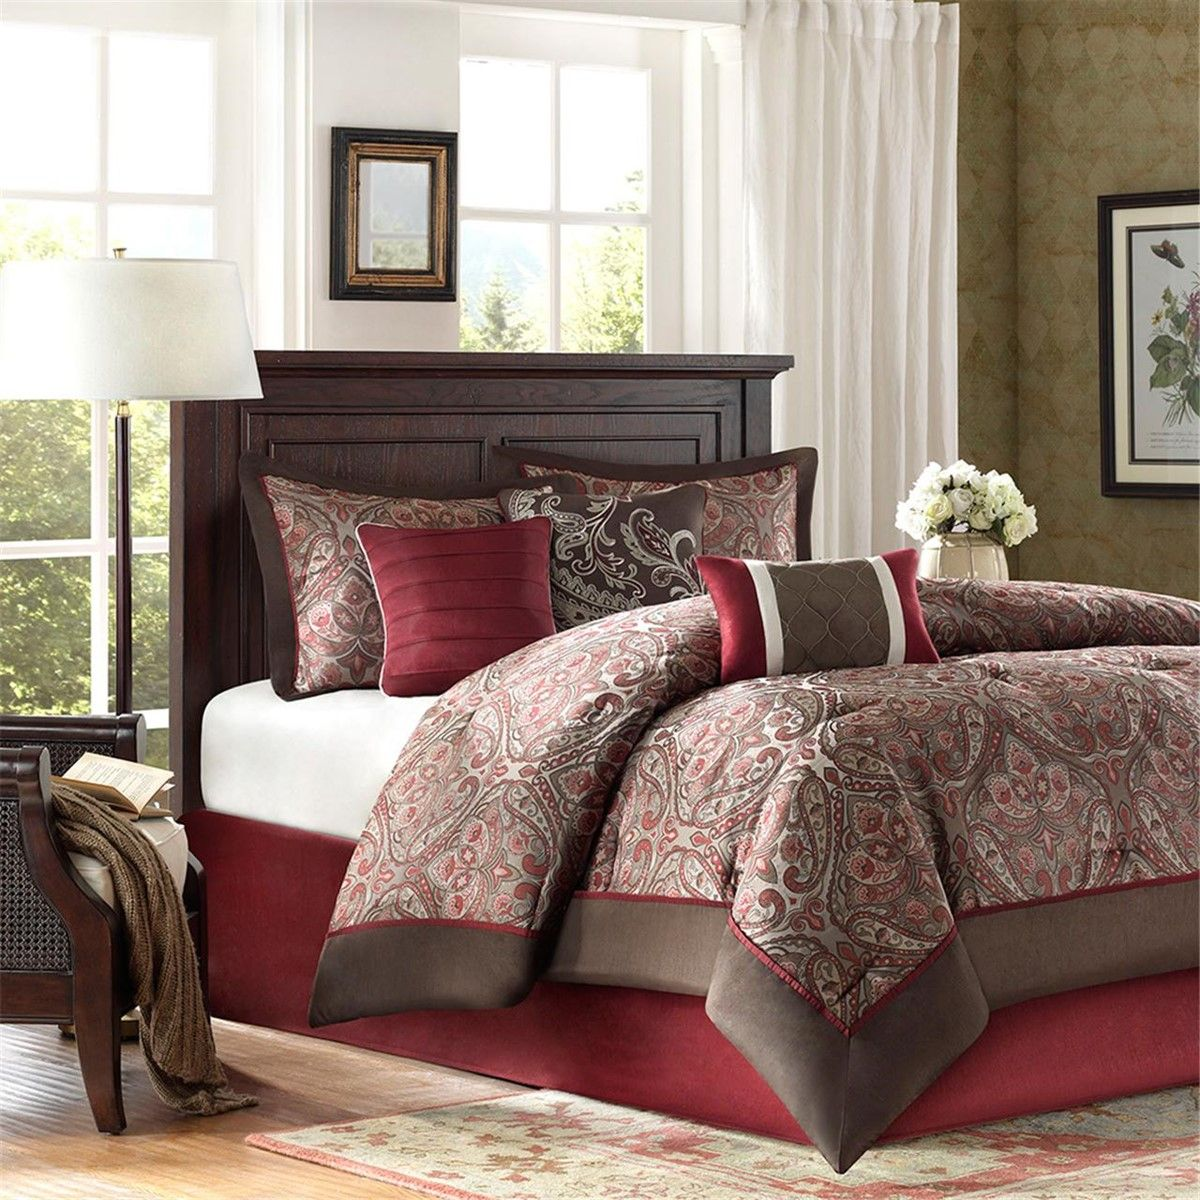 new king size talbot 7 piece comforter set red traditional